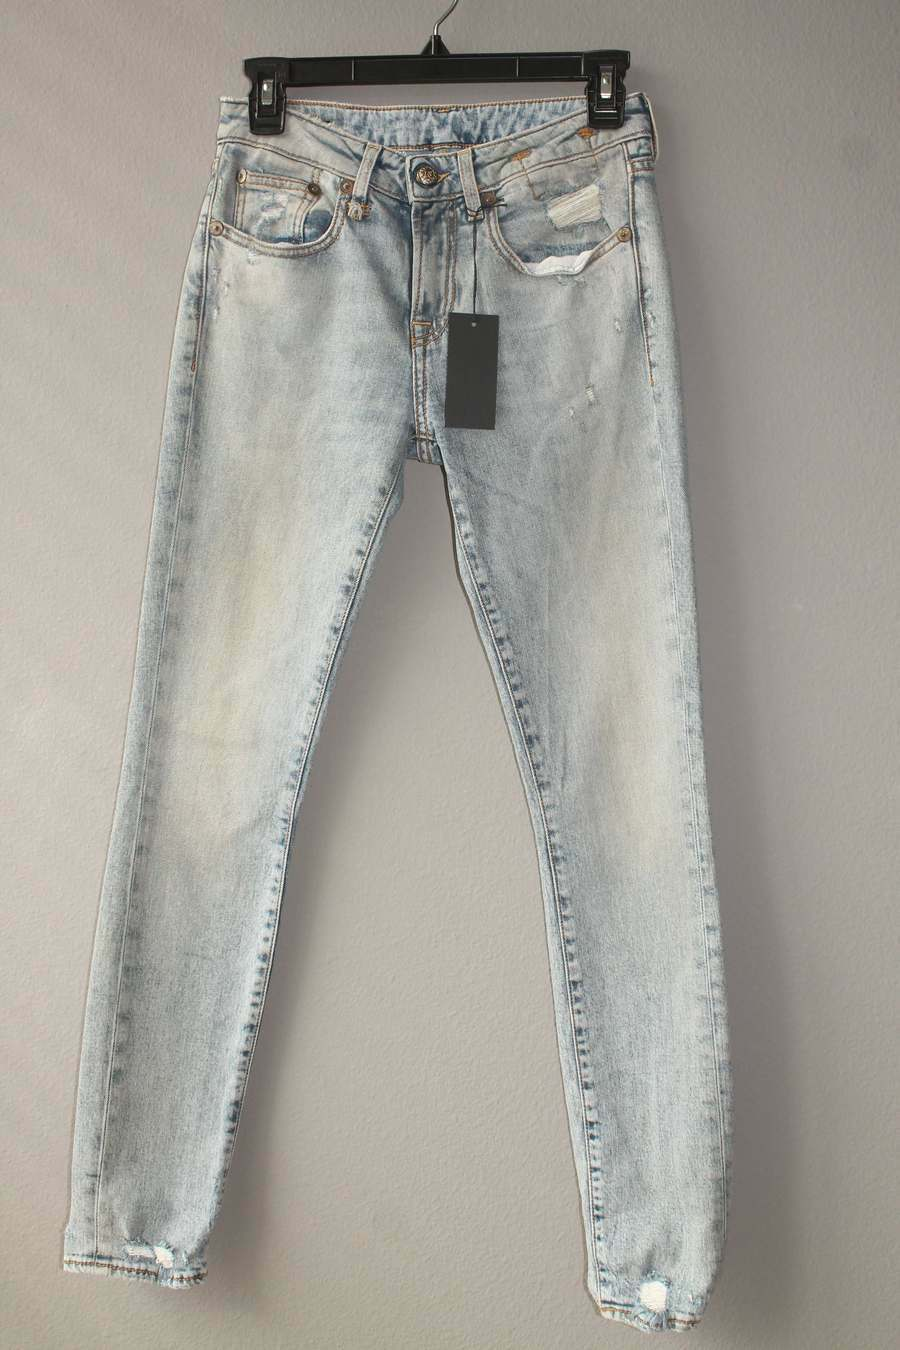 R13 WOMENS JEANS ALISON CROP LINCOLN CLEAN SIZE 26 NEW